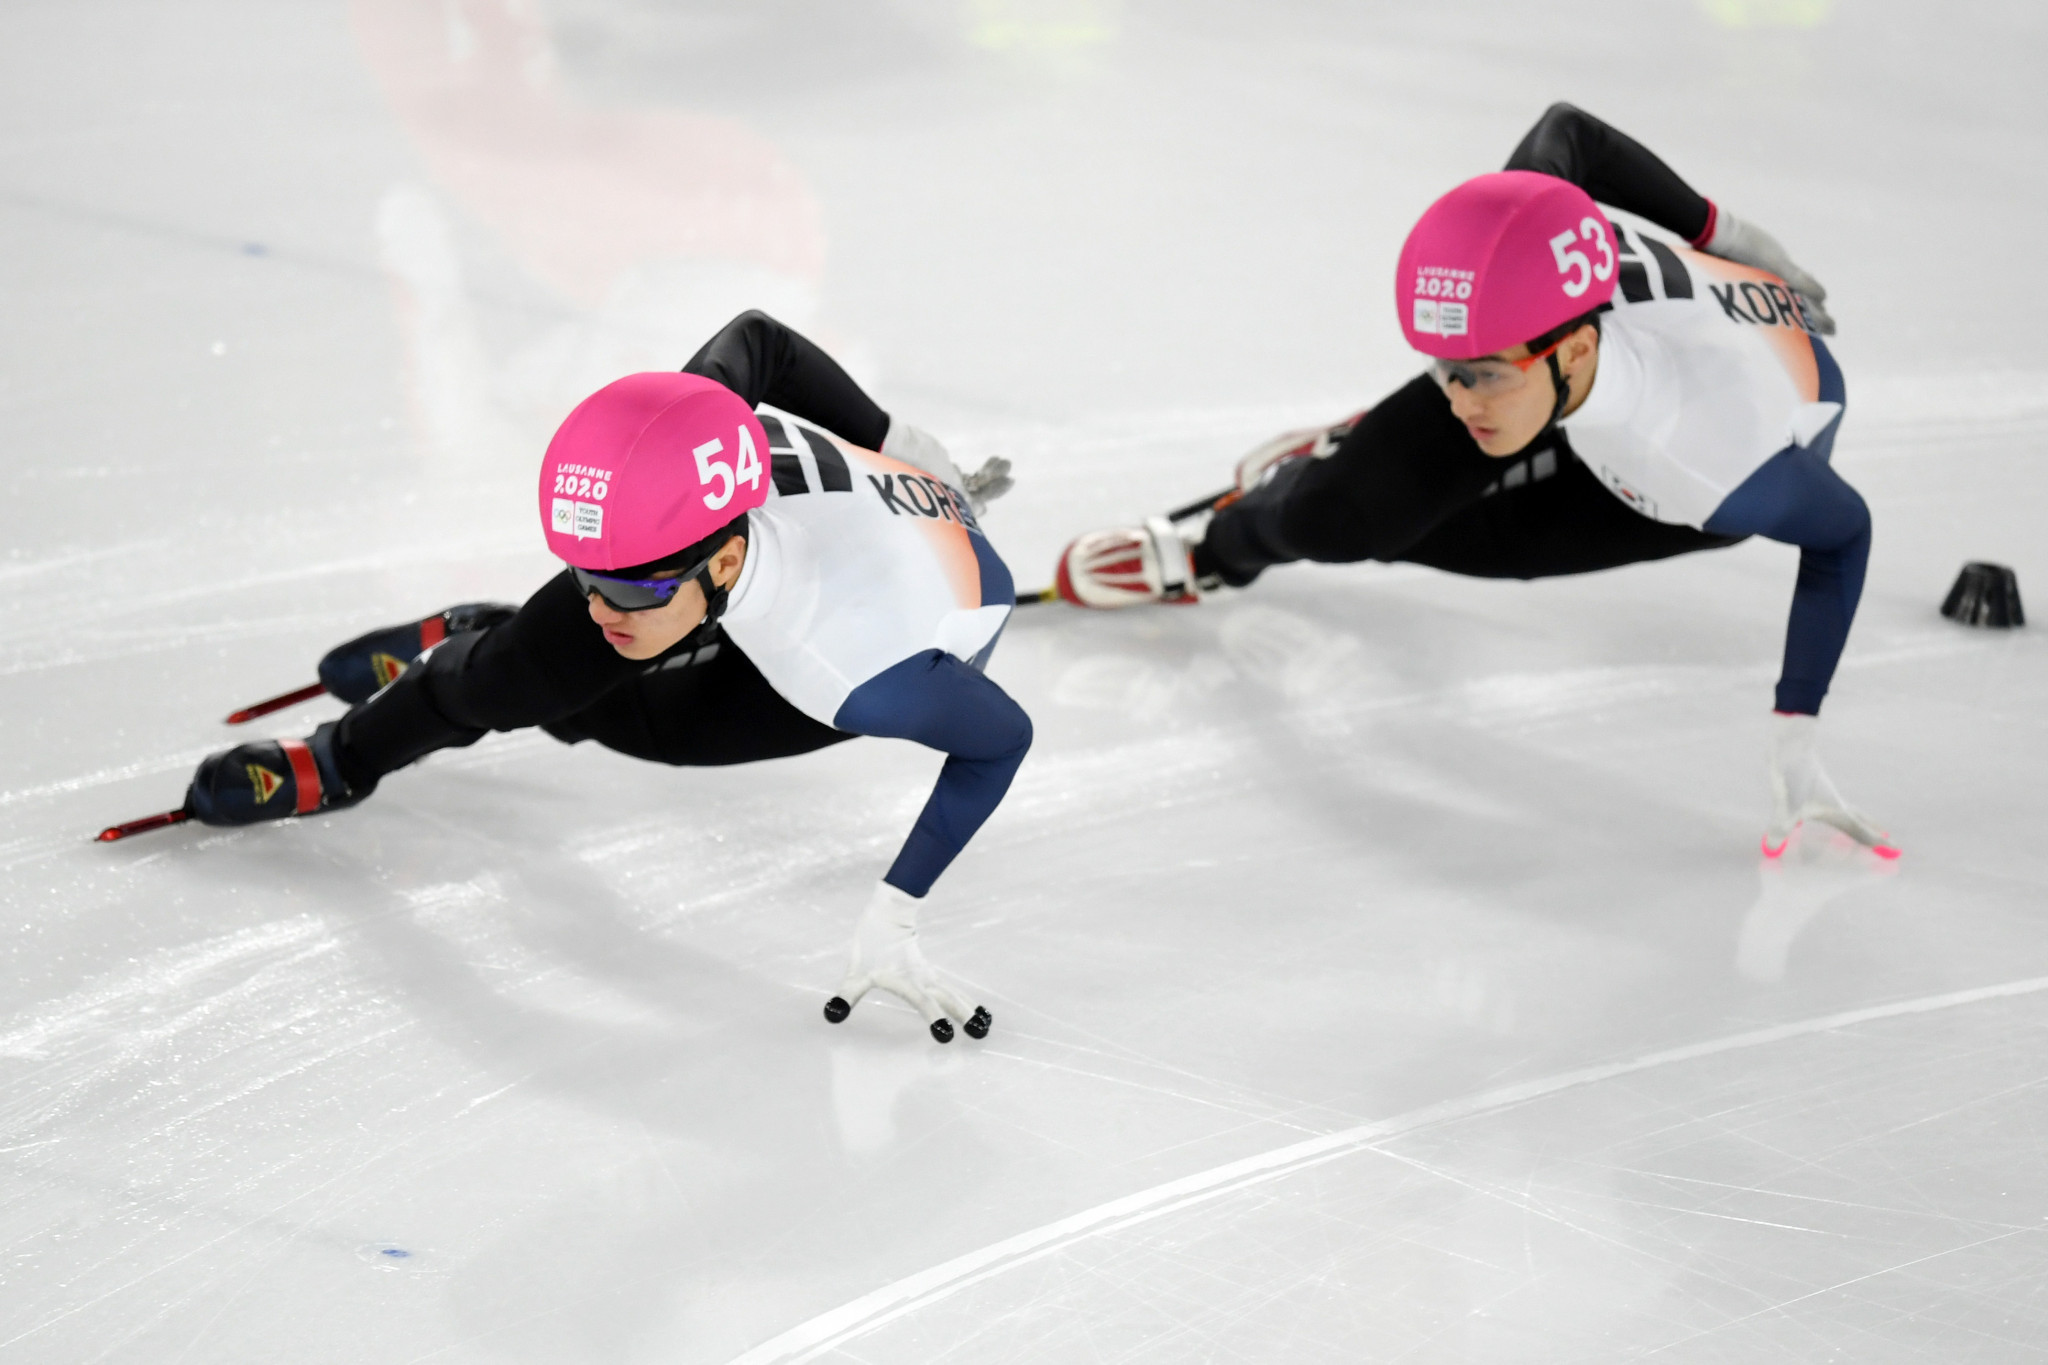 Lausanne 2020 champions to compete at ISU Short Track World Junior Championships